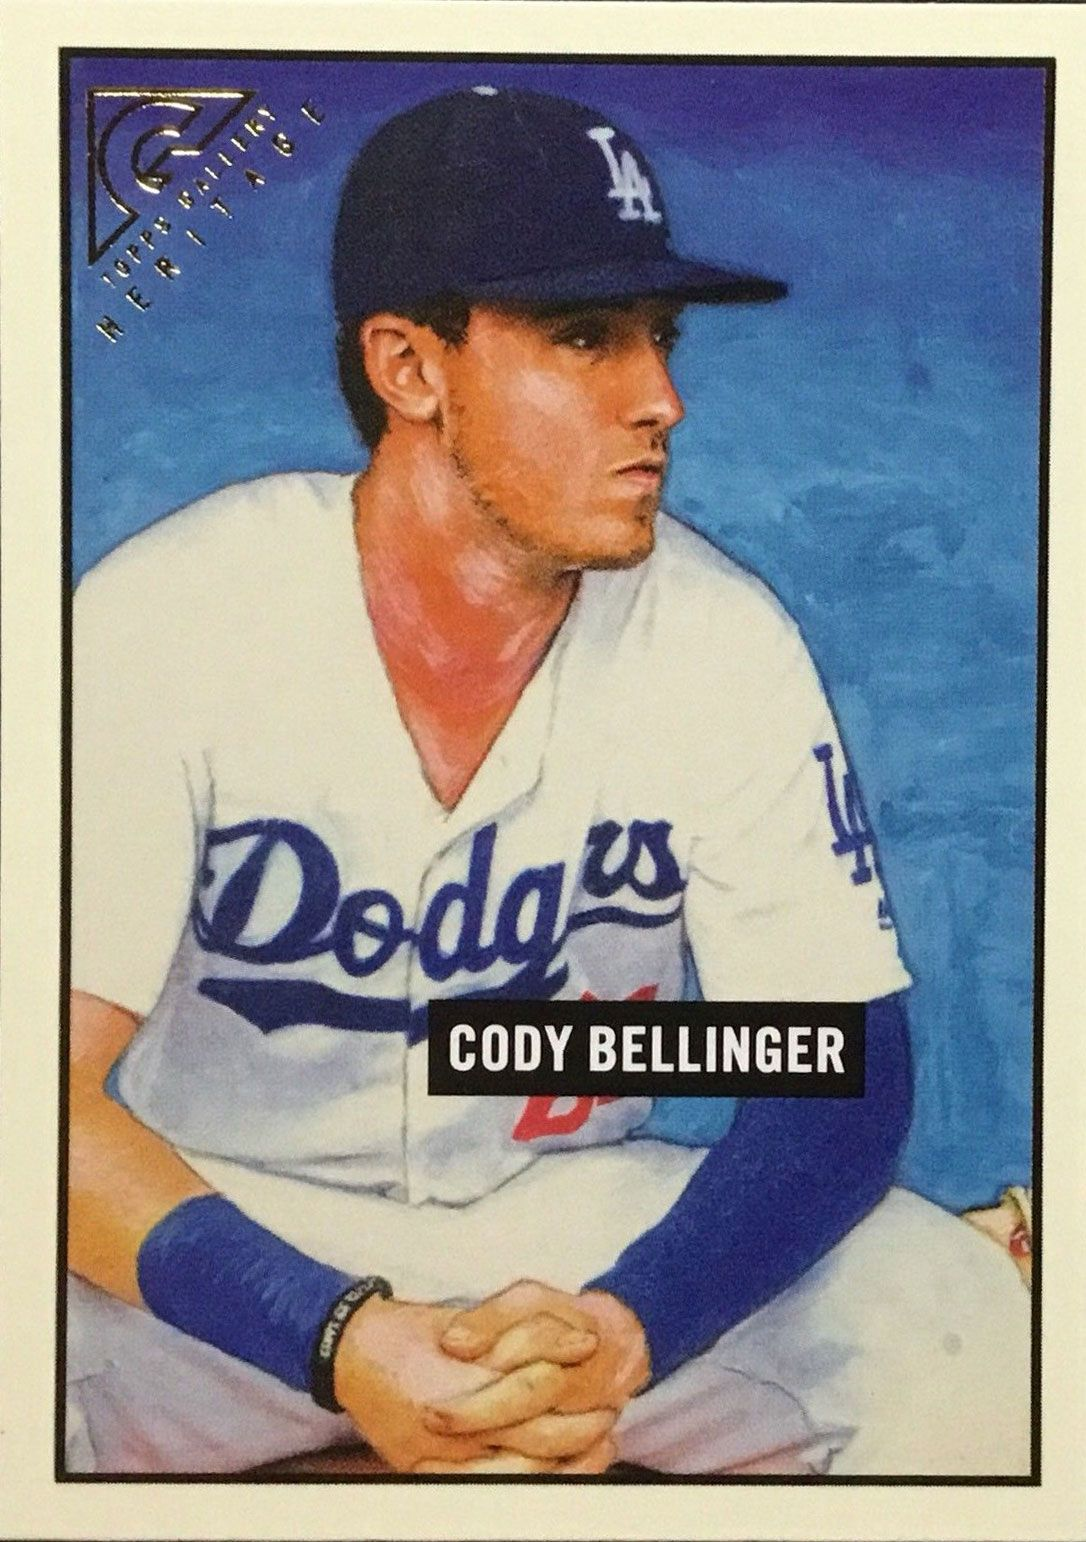 2017 Topps Gallery All The Dodgers Cards Cody Bellinger